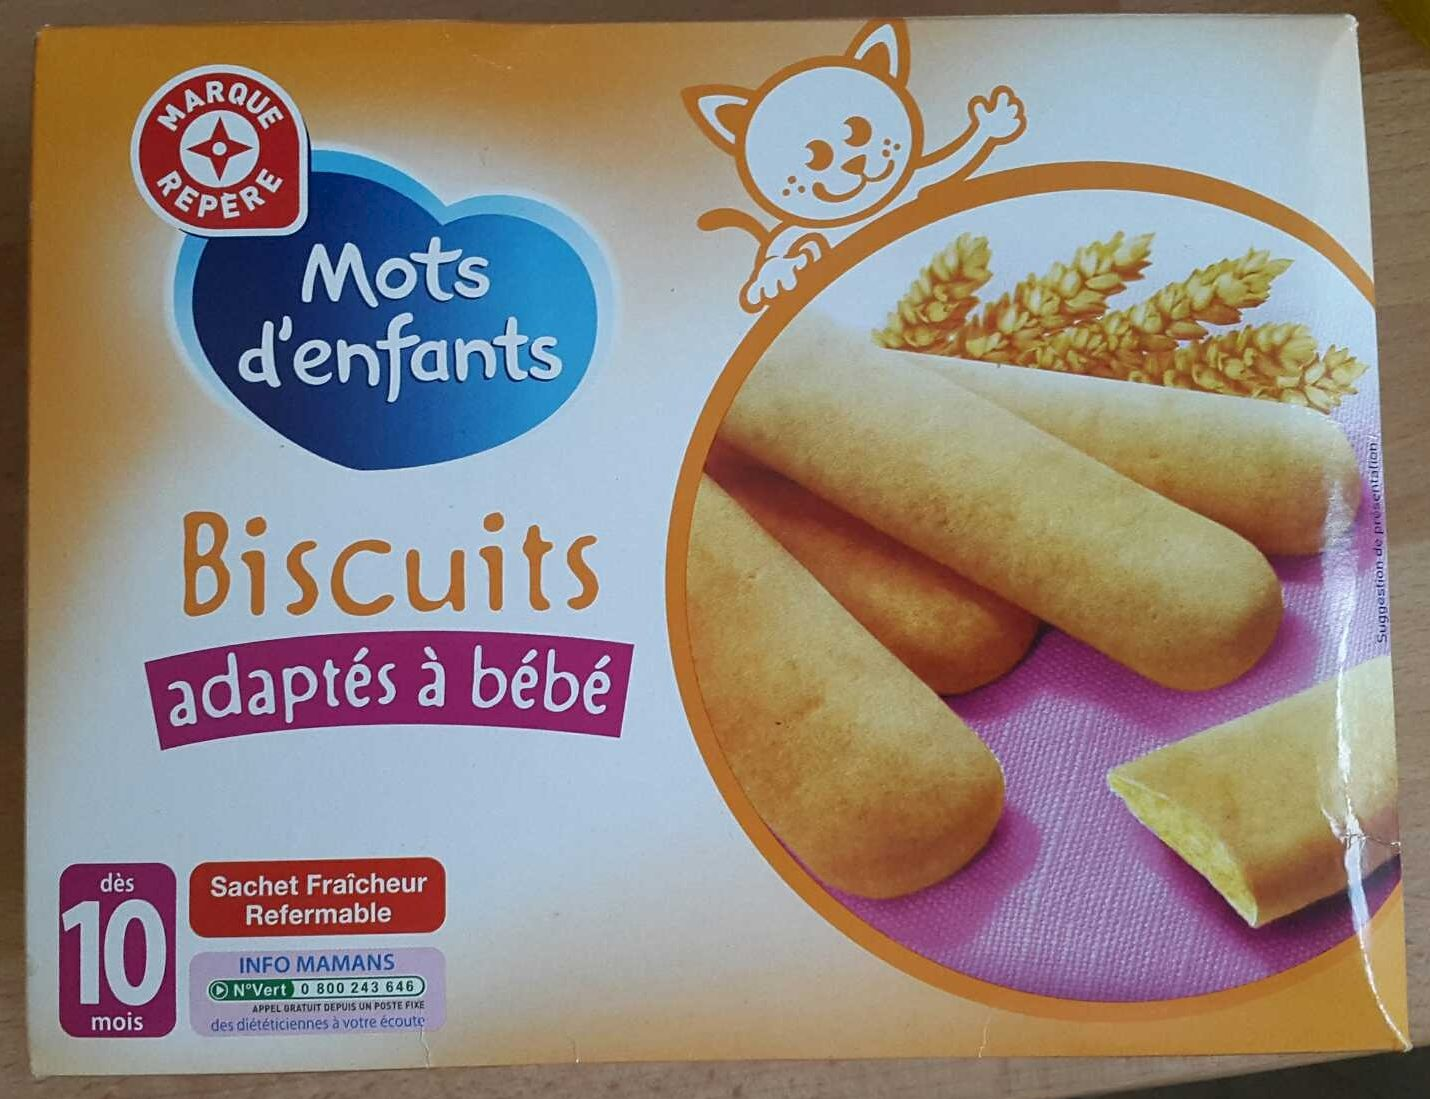 Biscuits adaptés à bébé - Product - fr